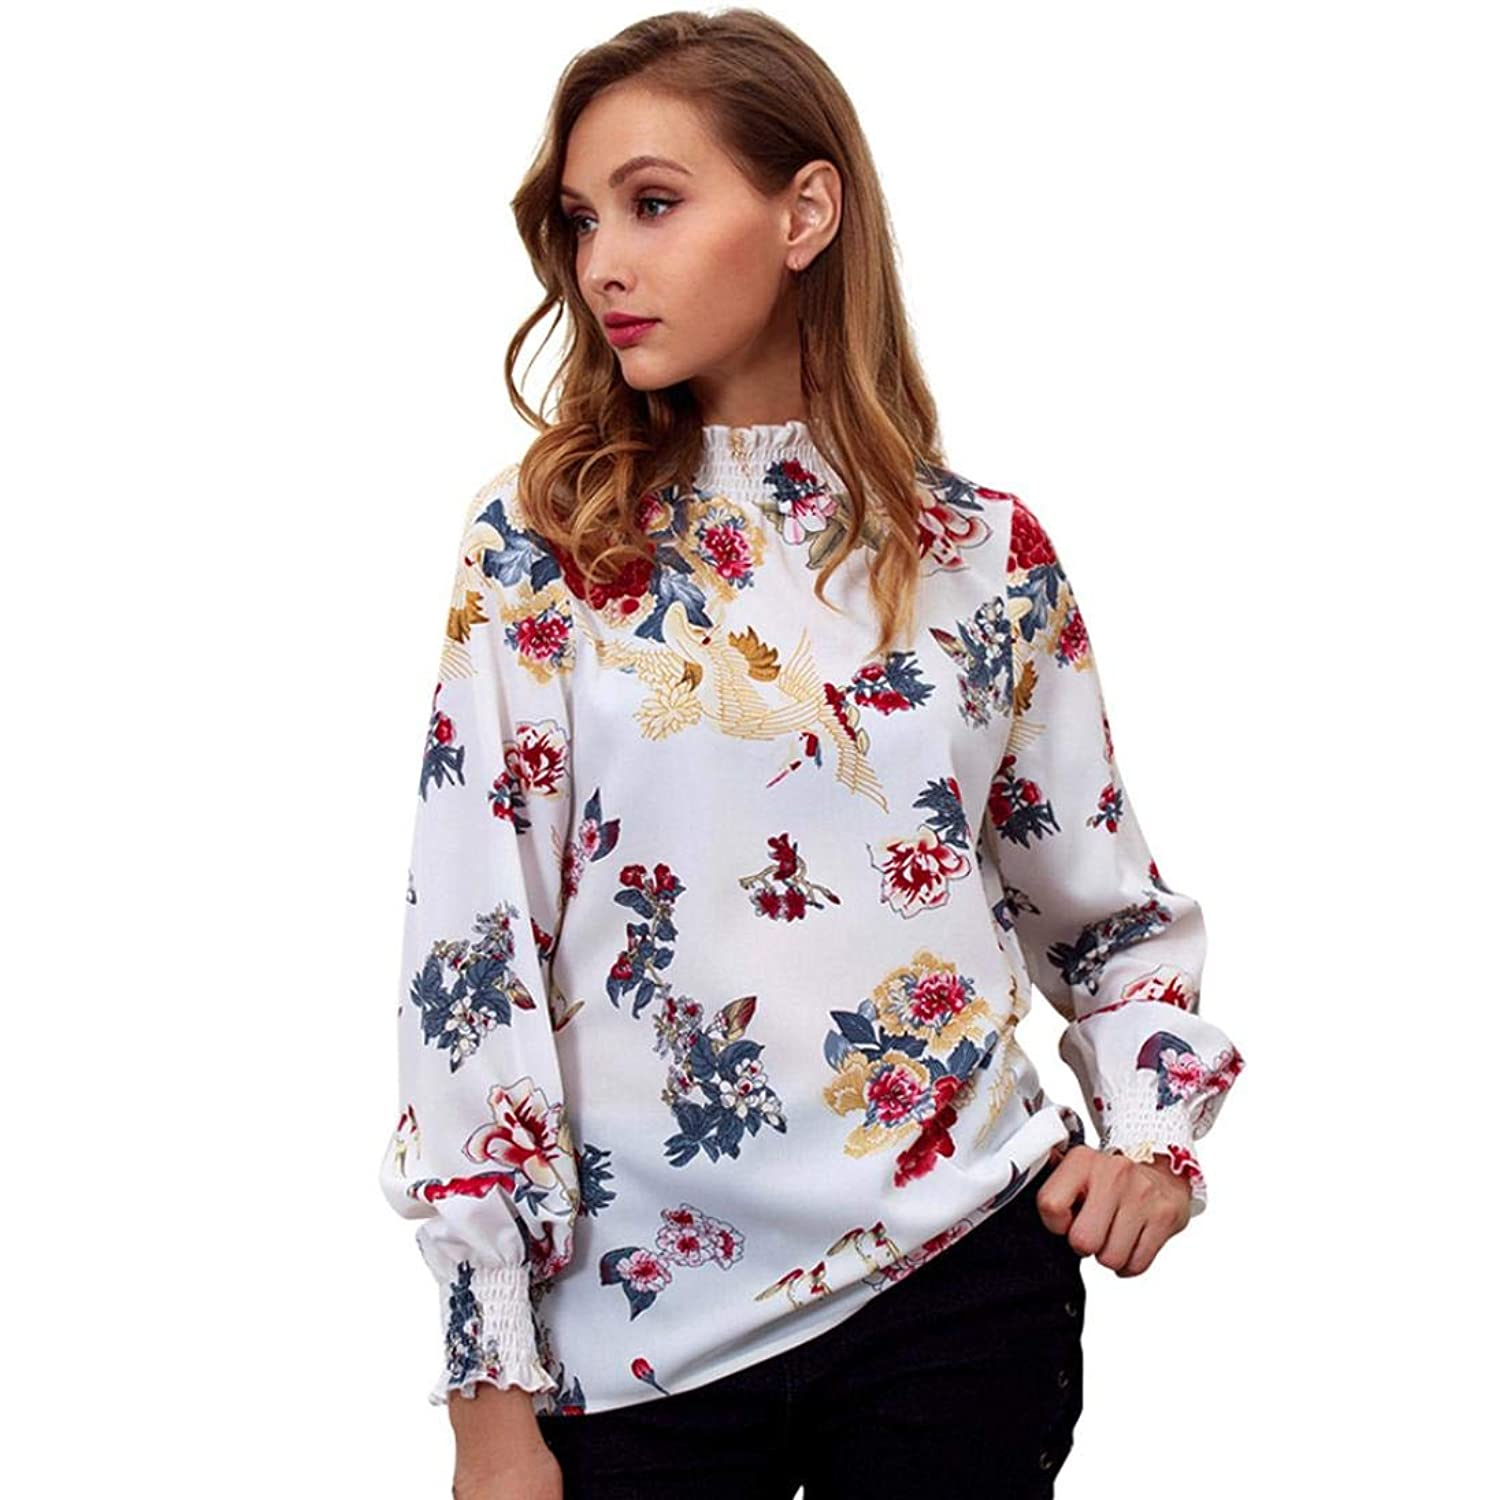 5d5d8220 Welcome to the Kulywon store, Kulywon is a boutique that focuses on women\'s  fashion garment boutiques . If you need other styles of women\'s clothing,  ...